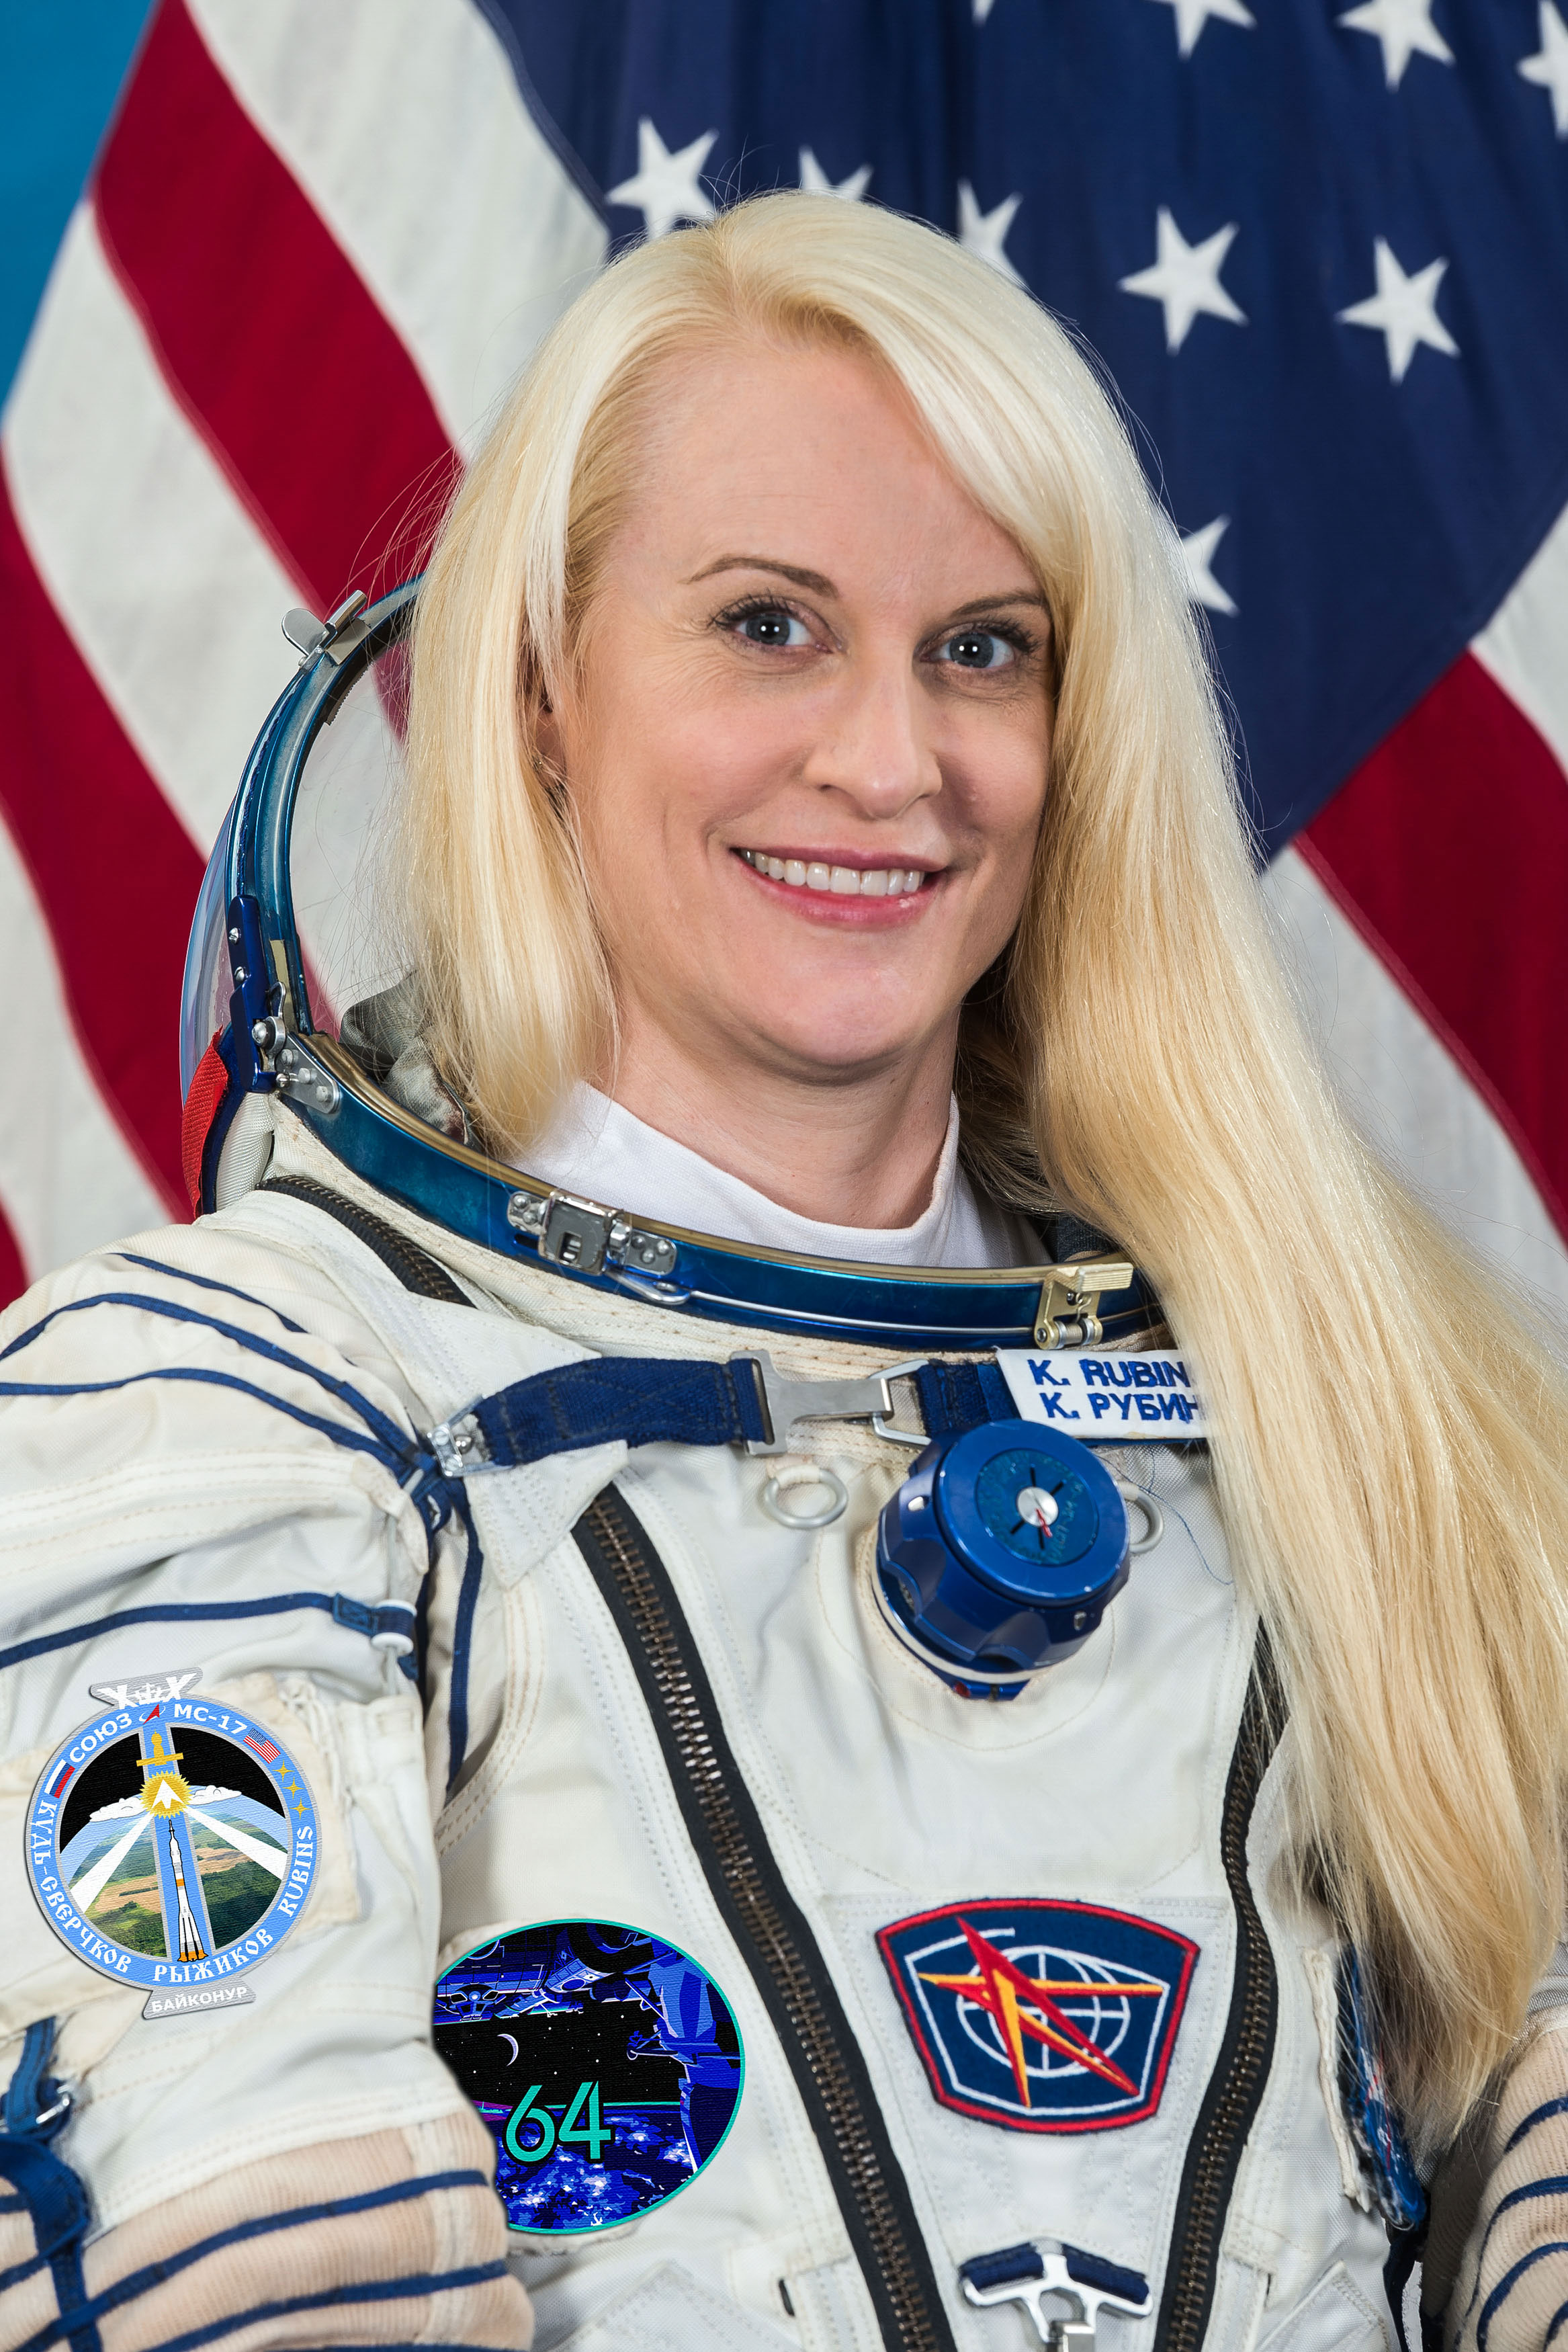 NASA astronaut Kate Rubins is ready for a 2nd 'bucket list' trip to the space station